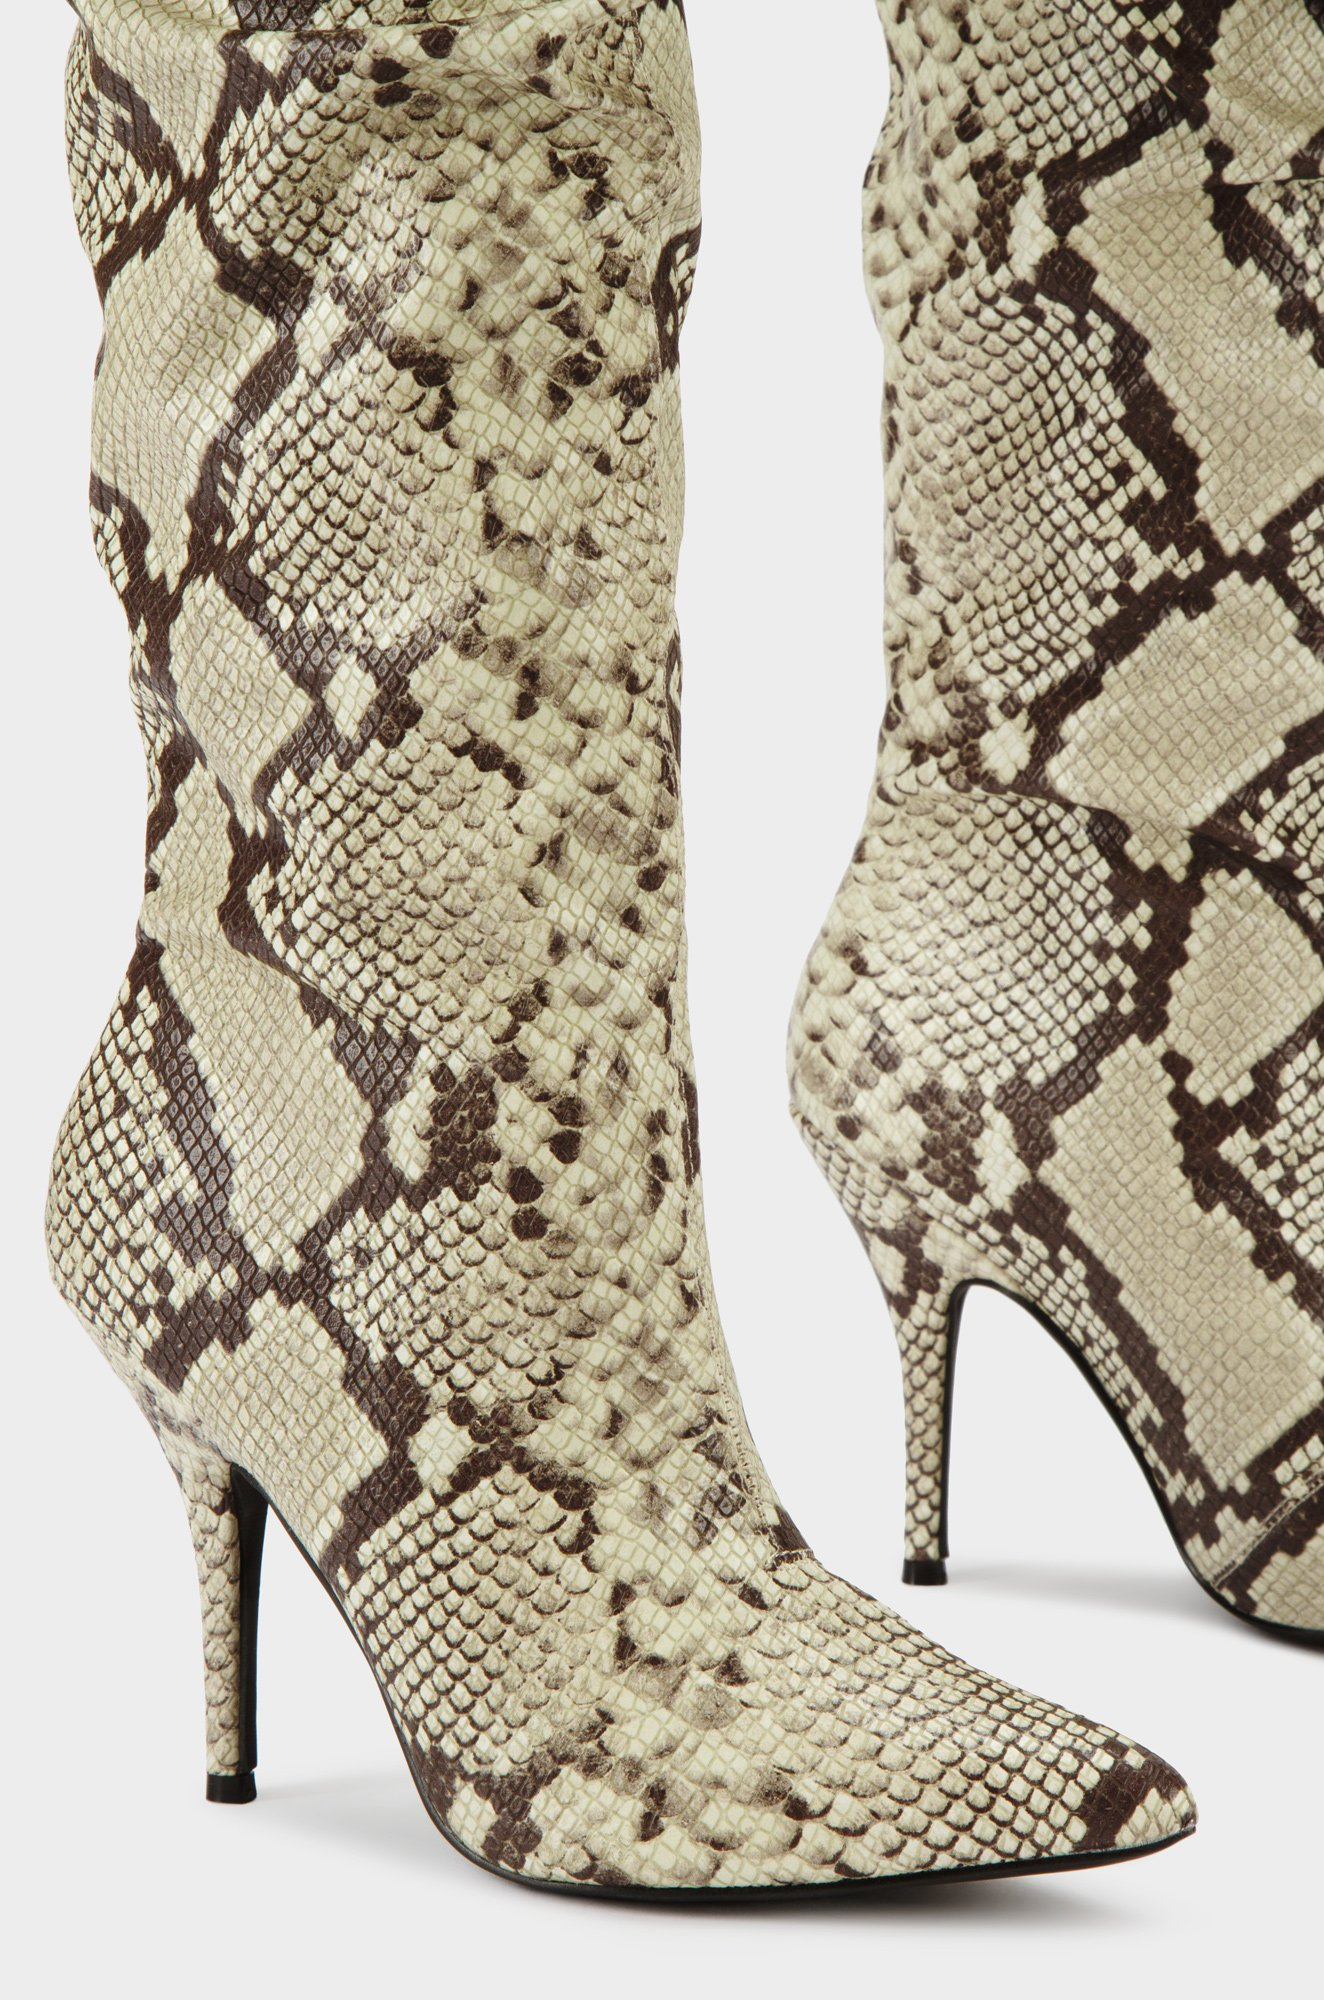 Cape-Robbin-Bown-Snake-Thigh-High-Slouch-Pointed-Toe-Over-The-Knee-Stiletto-Boot thumbnail 55